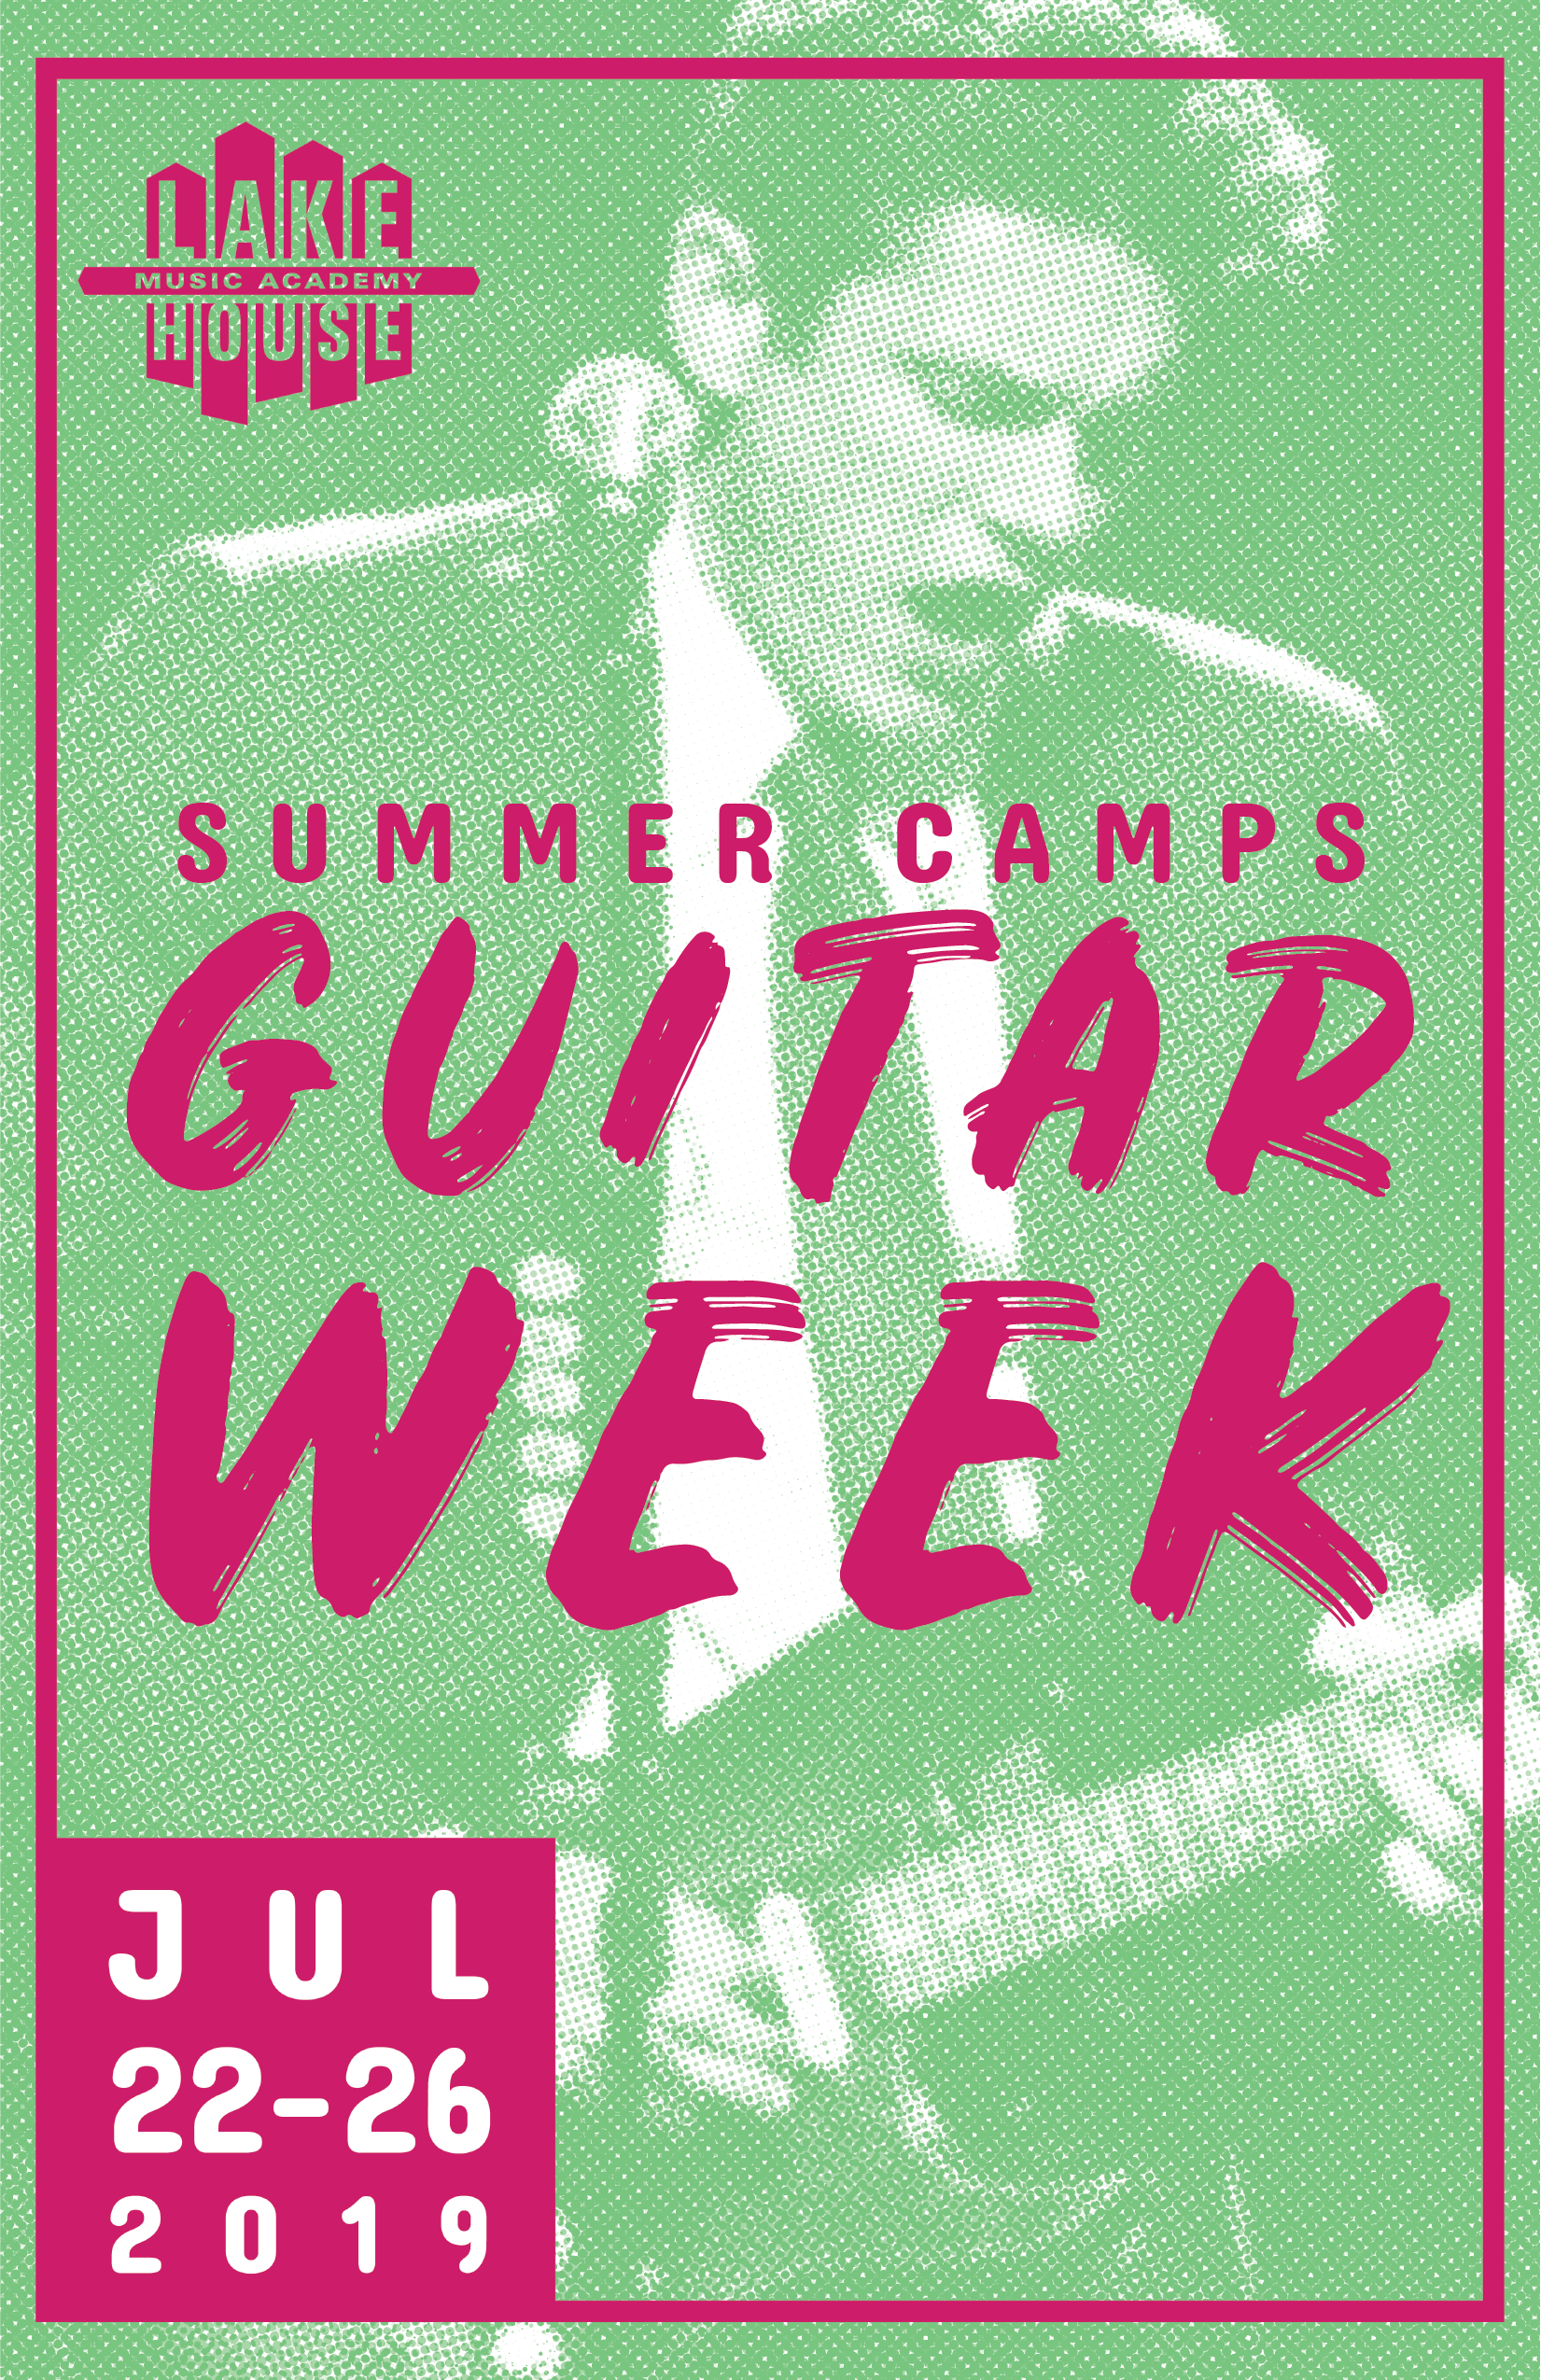 Guitar Week - July 22-26